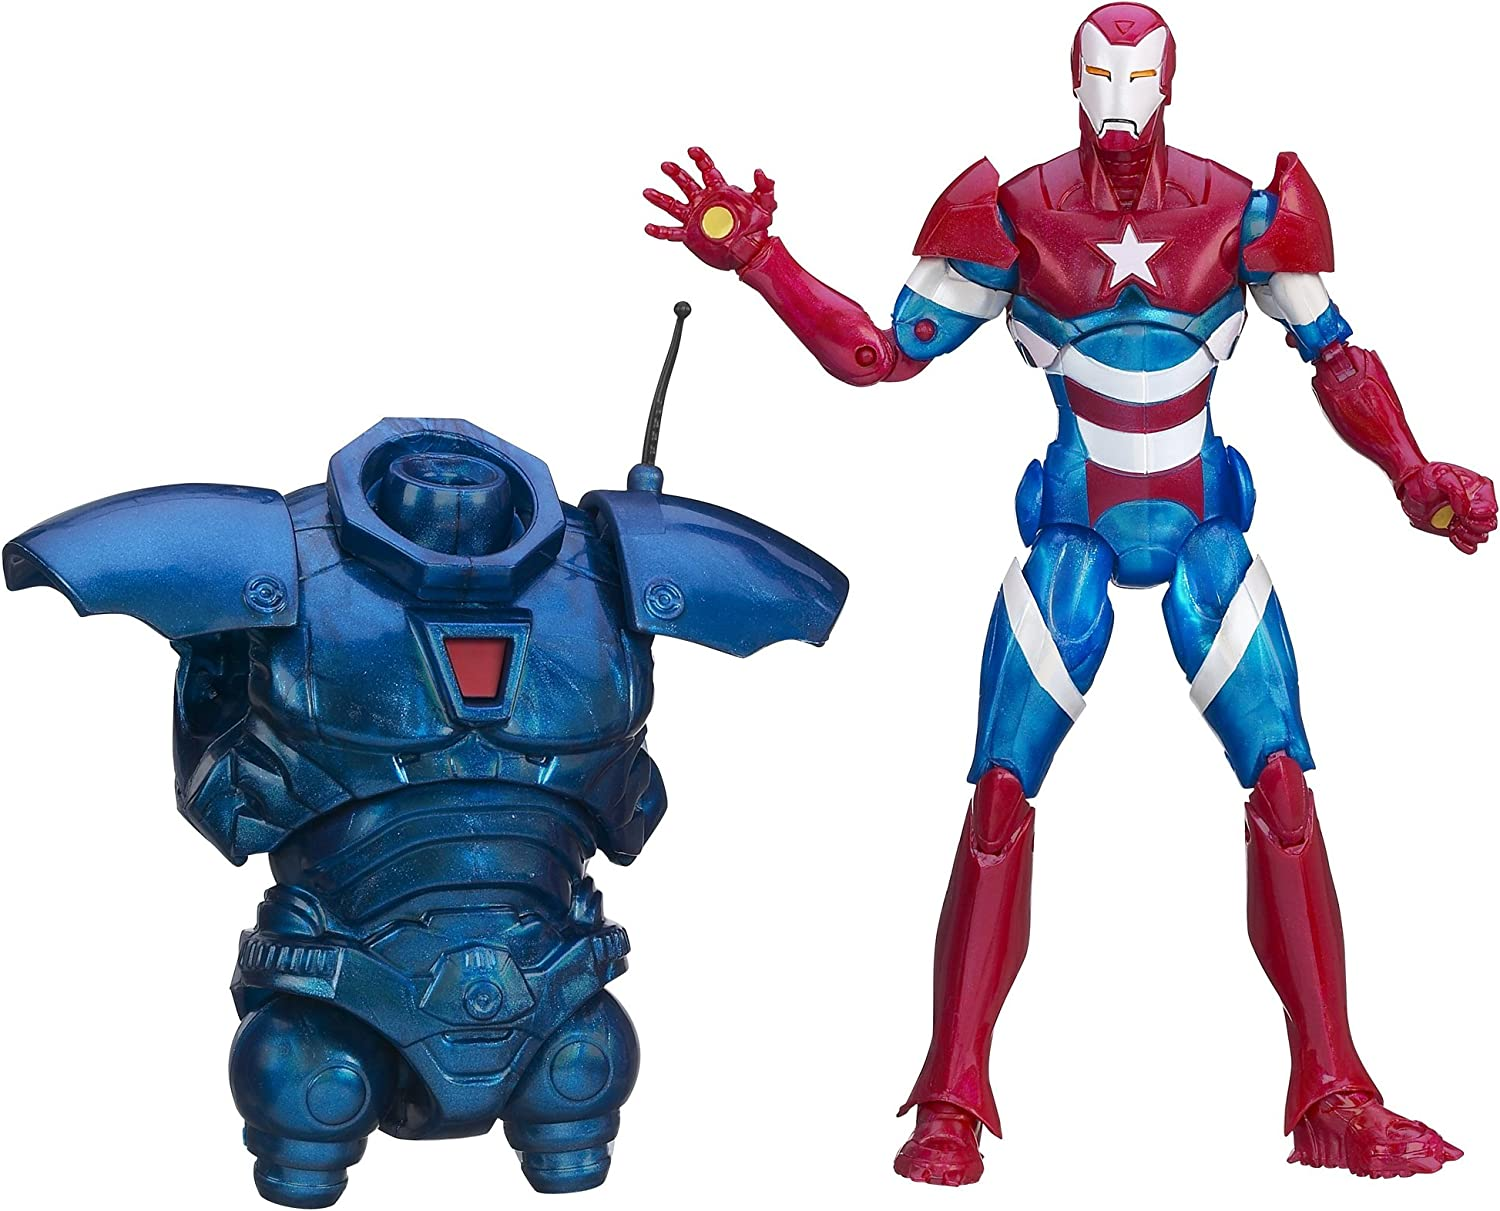 Marvel Legends Iron Man 3 - Iron Patriot [UK Import]